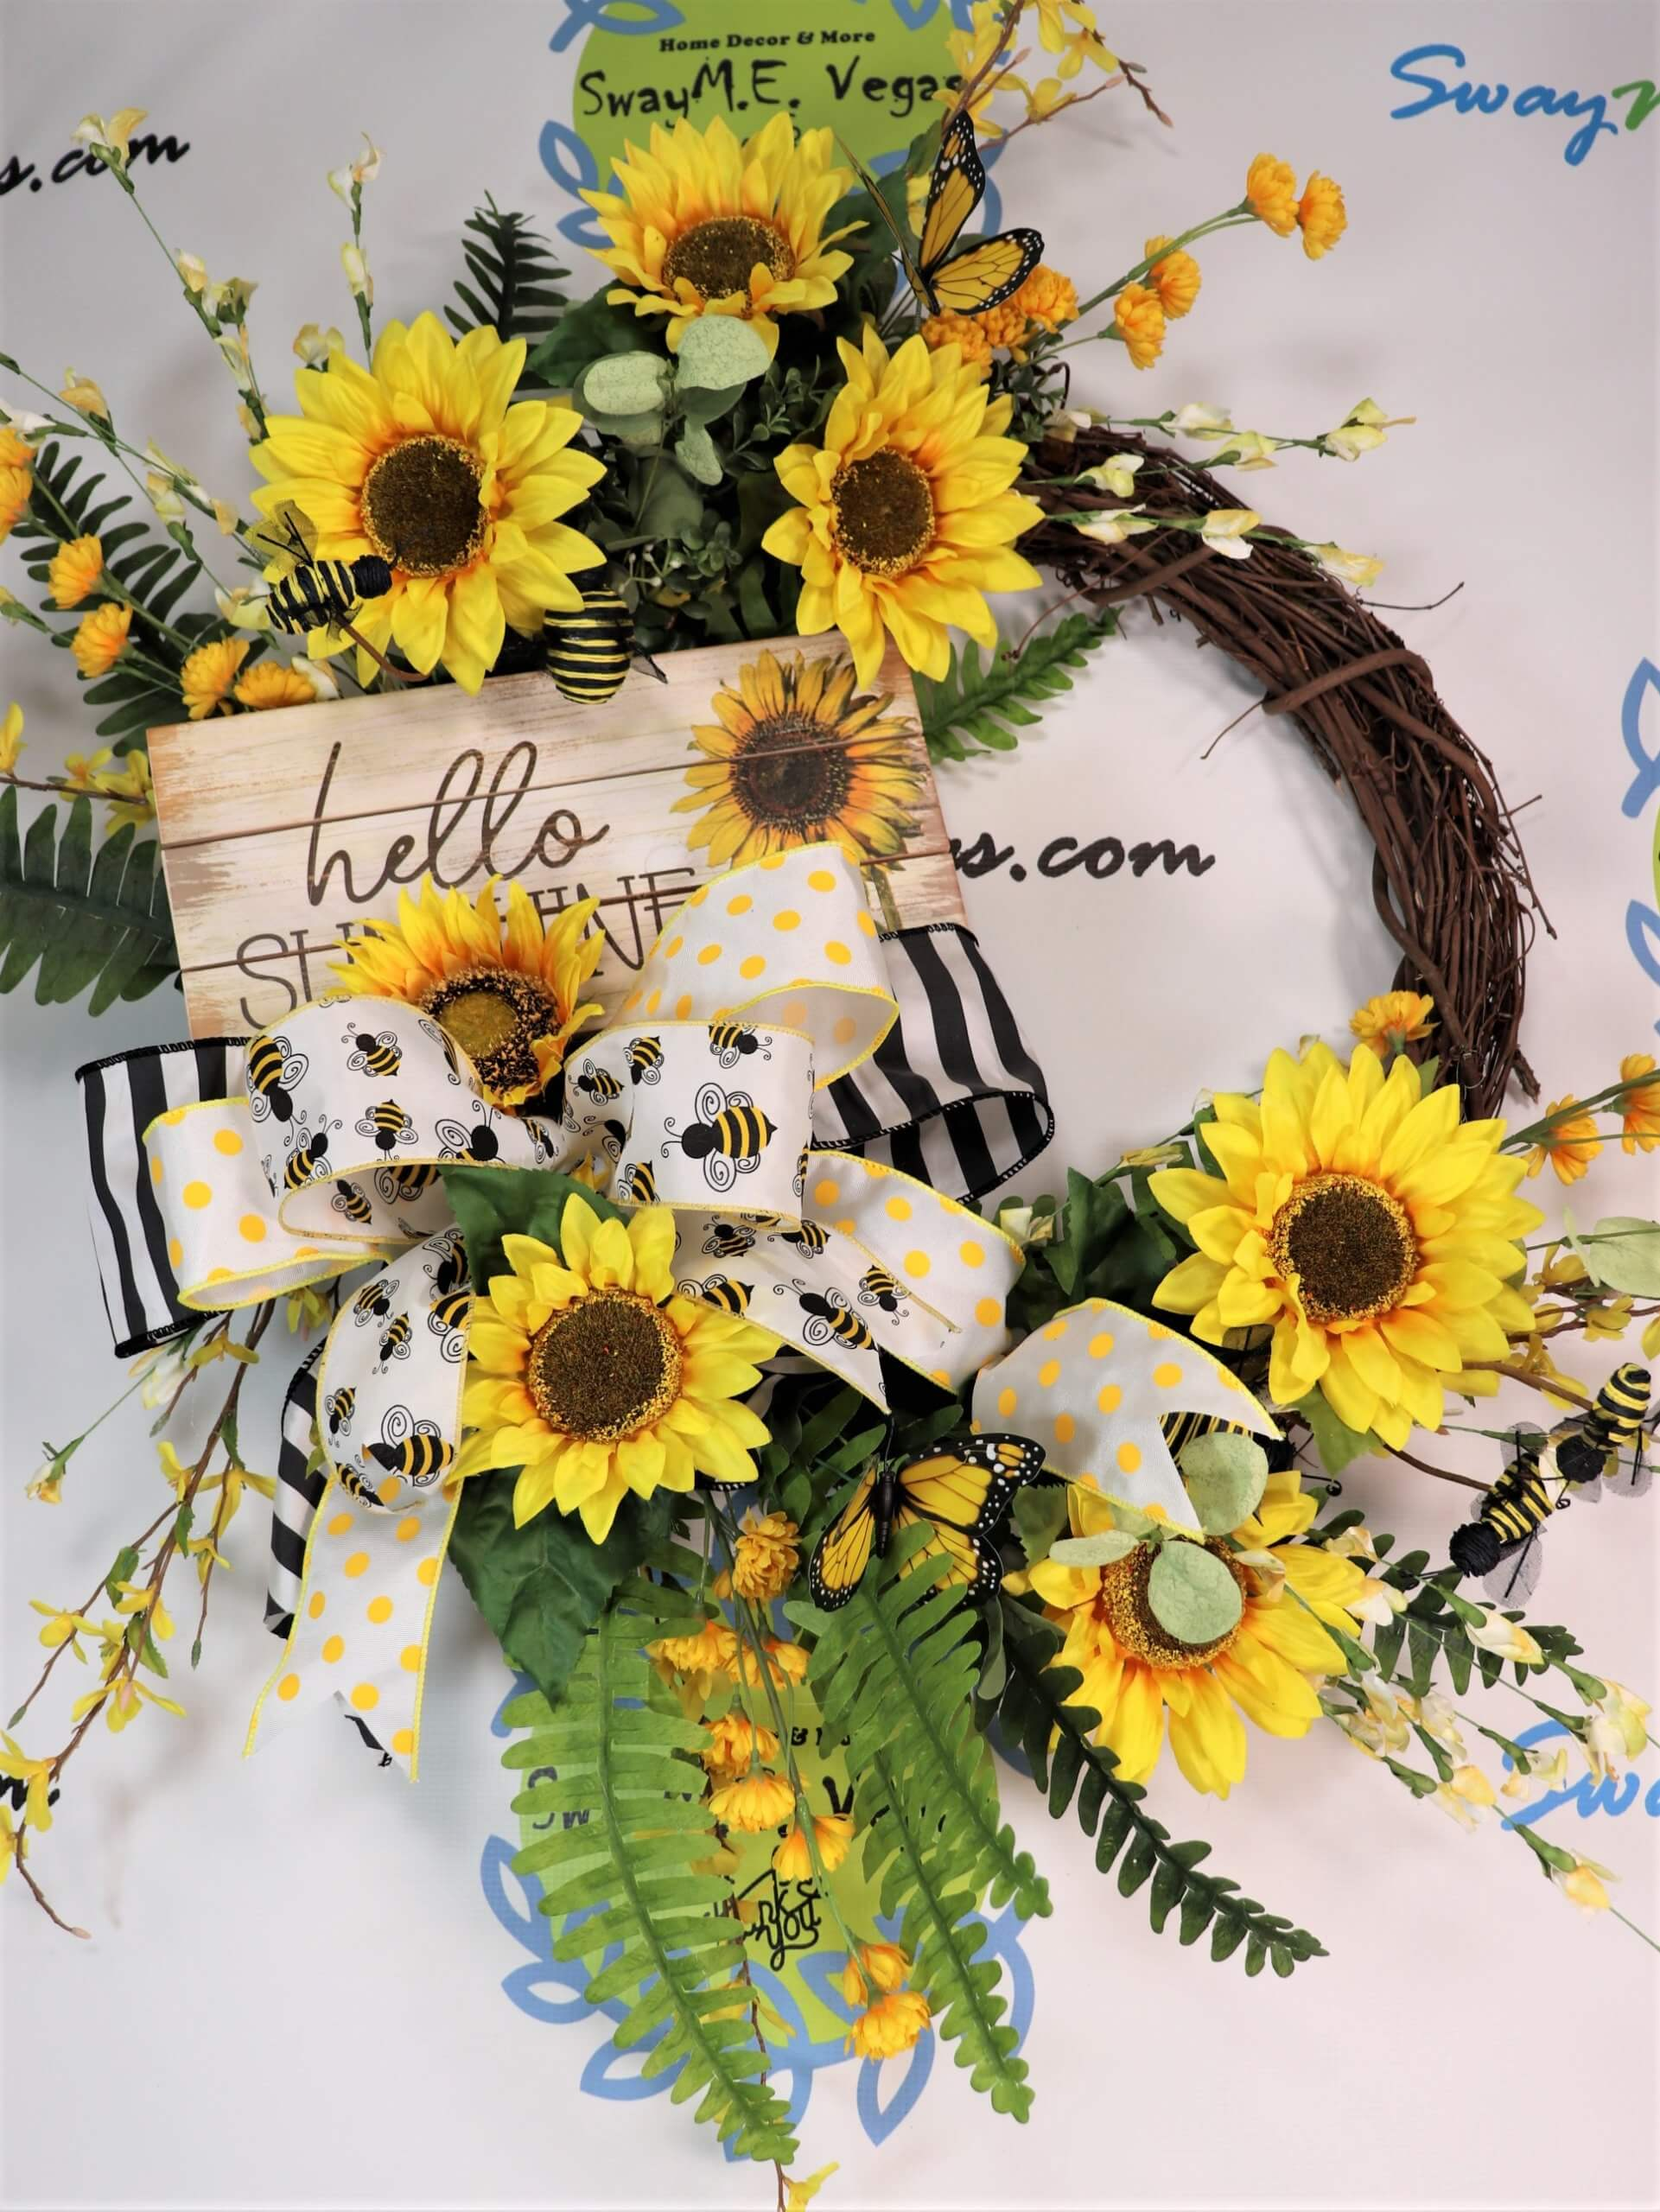 Summer Yellow Sunflower Bee Butterfly Wreath